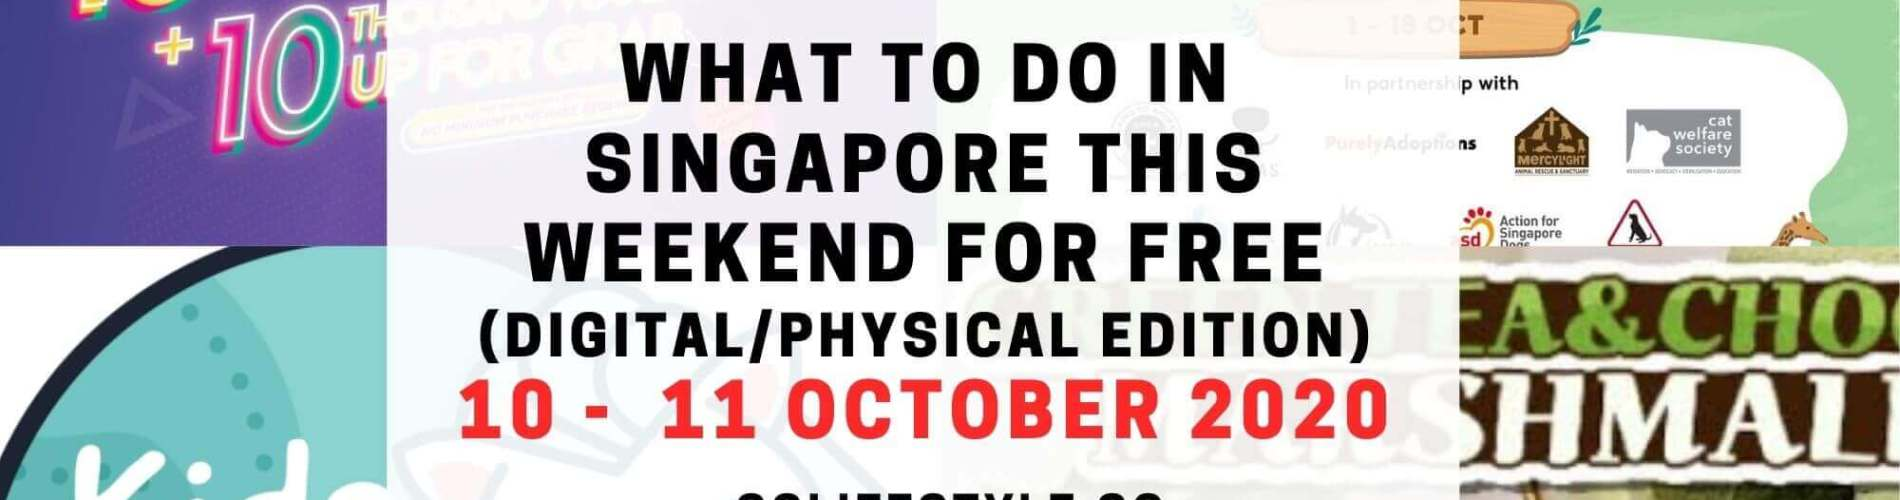 weekend what to do singapore for free 10 11 october 2020